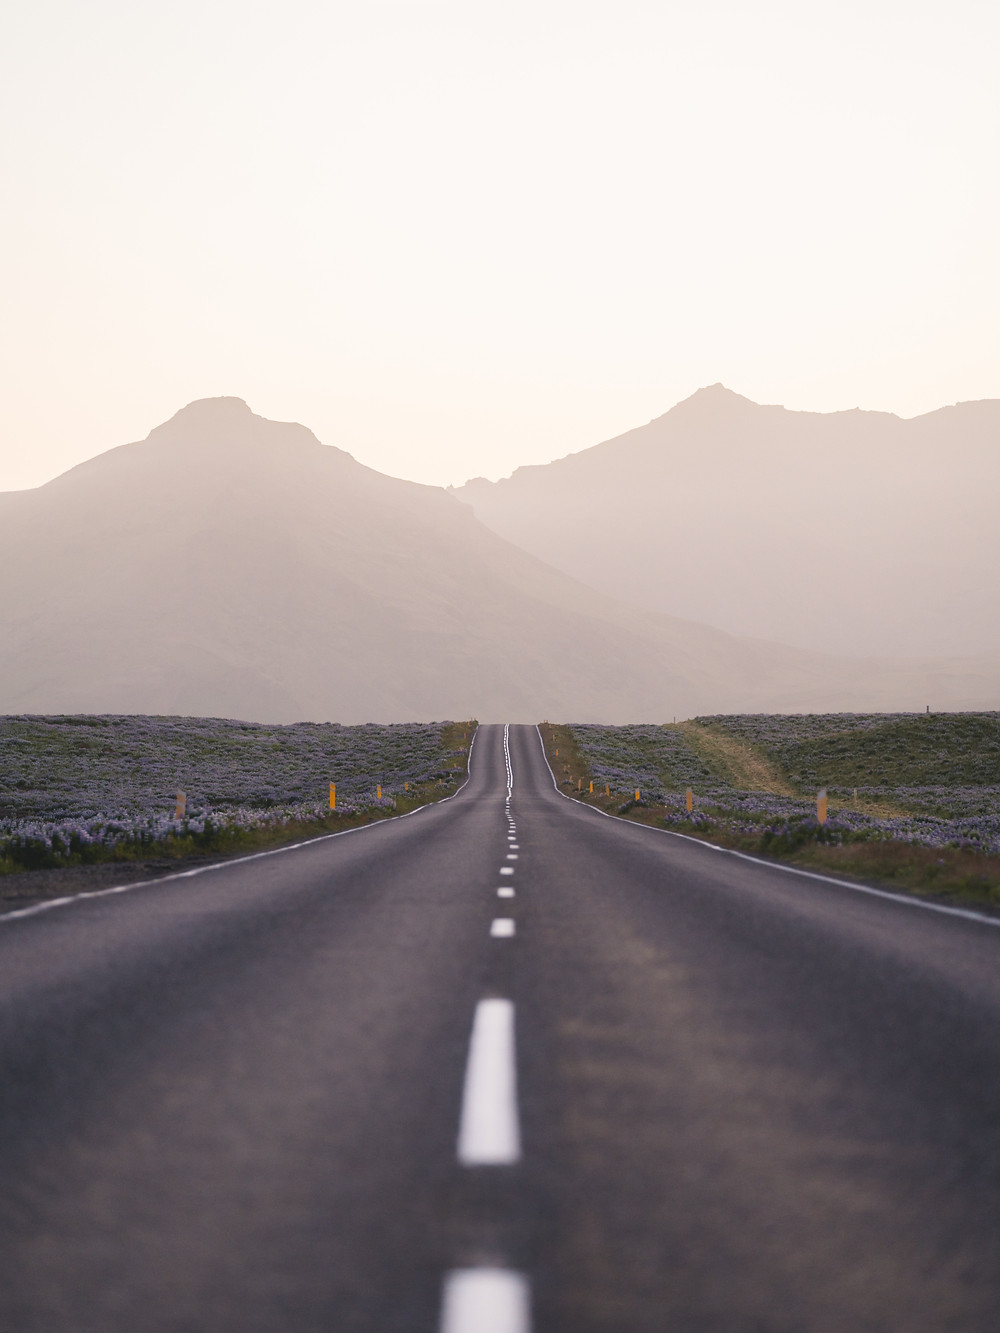 long lonely road in the desert with mountains on the horizon.